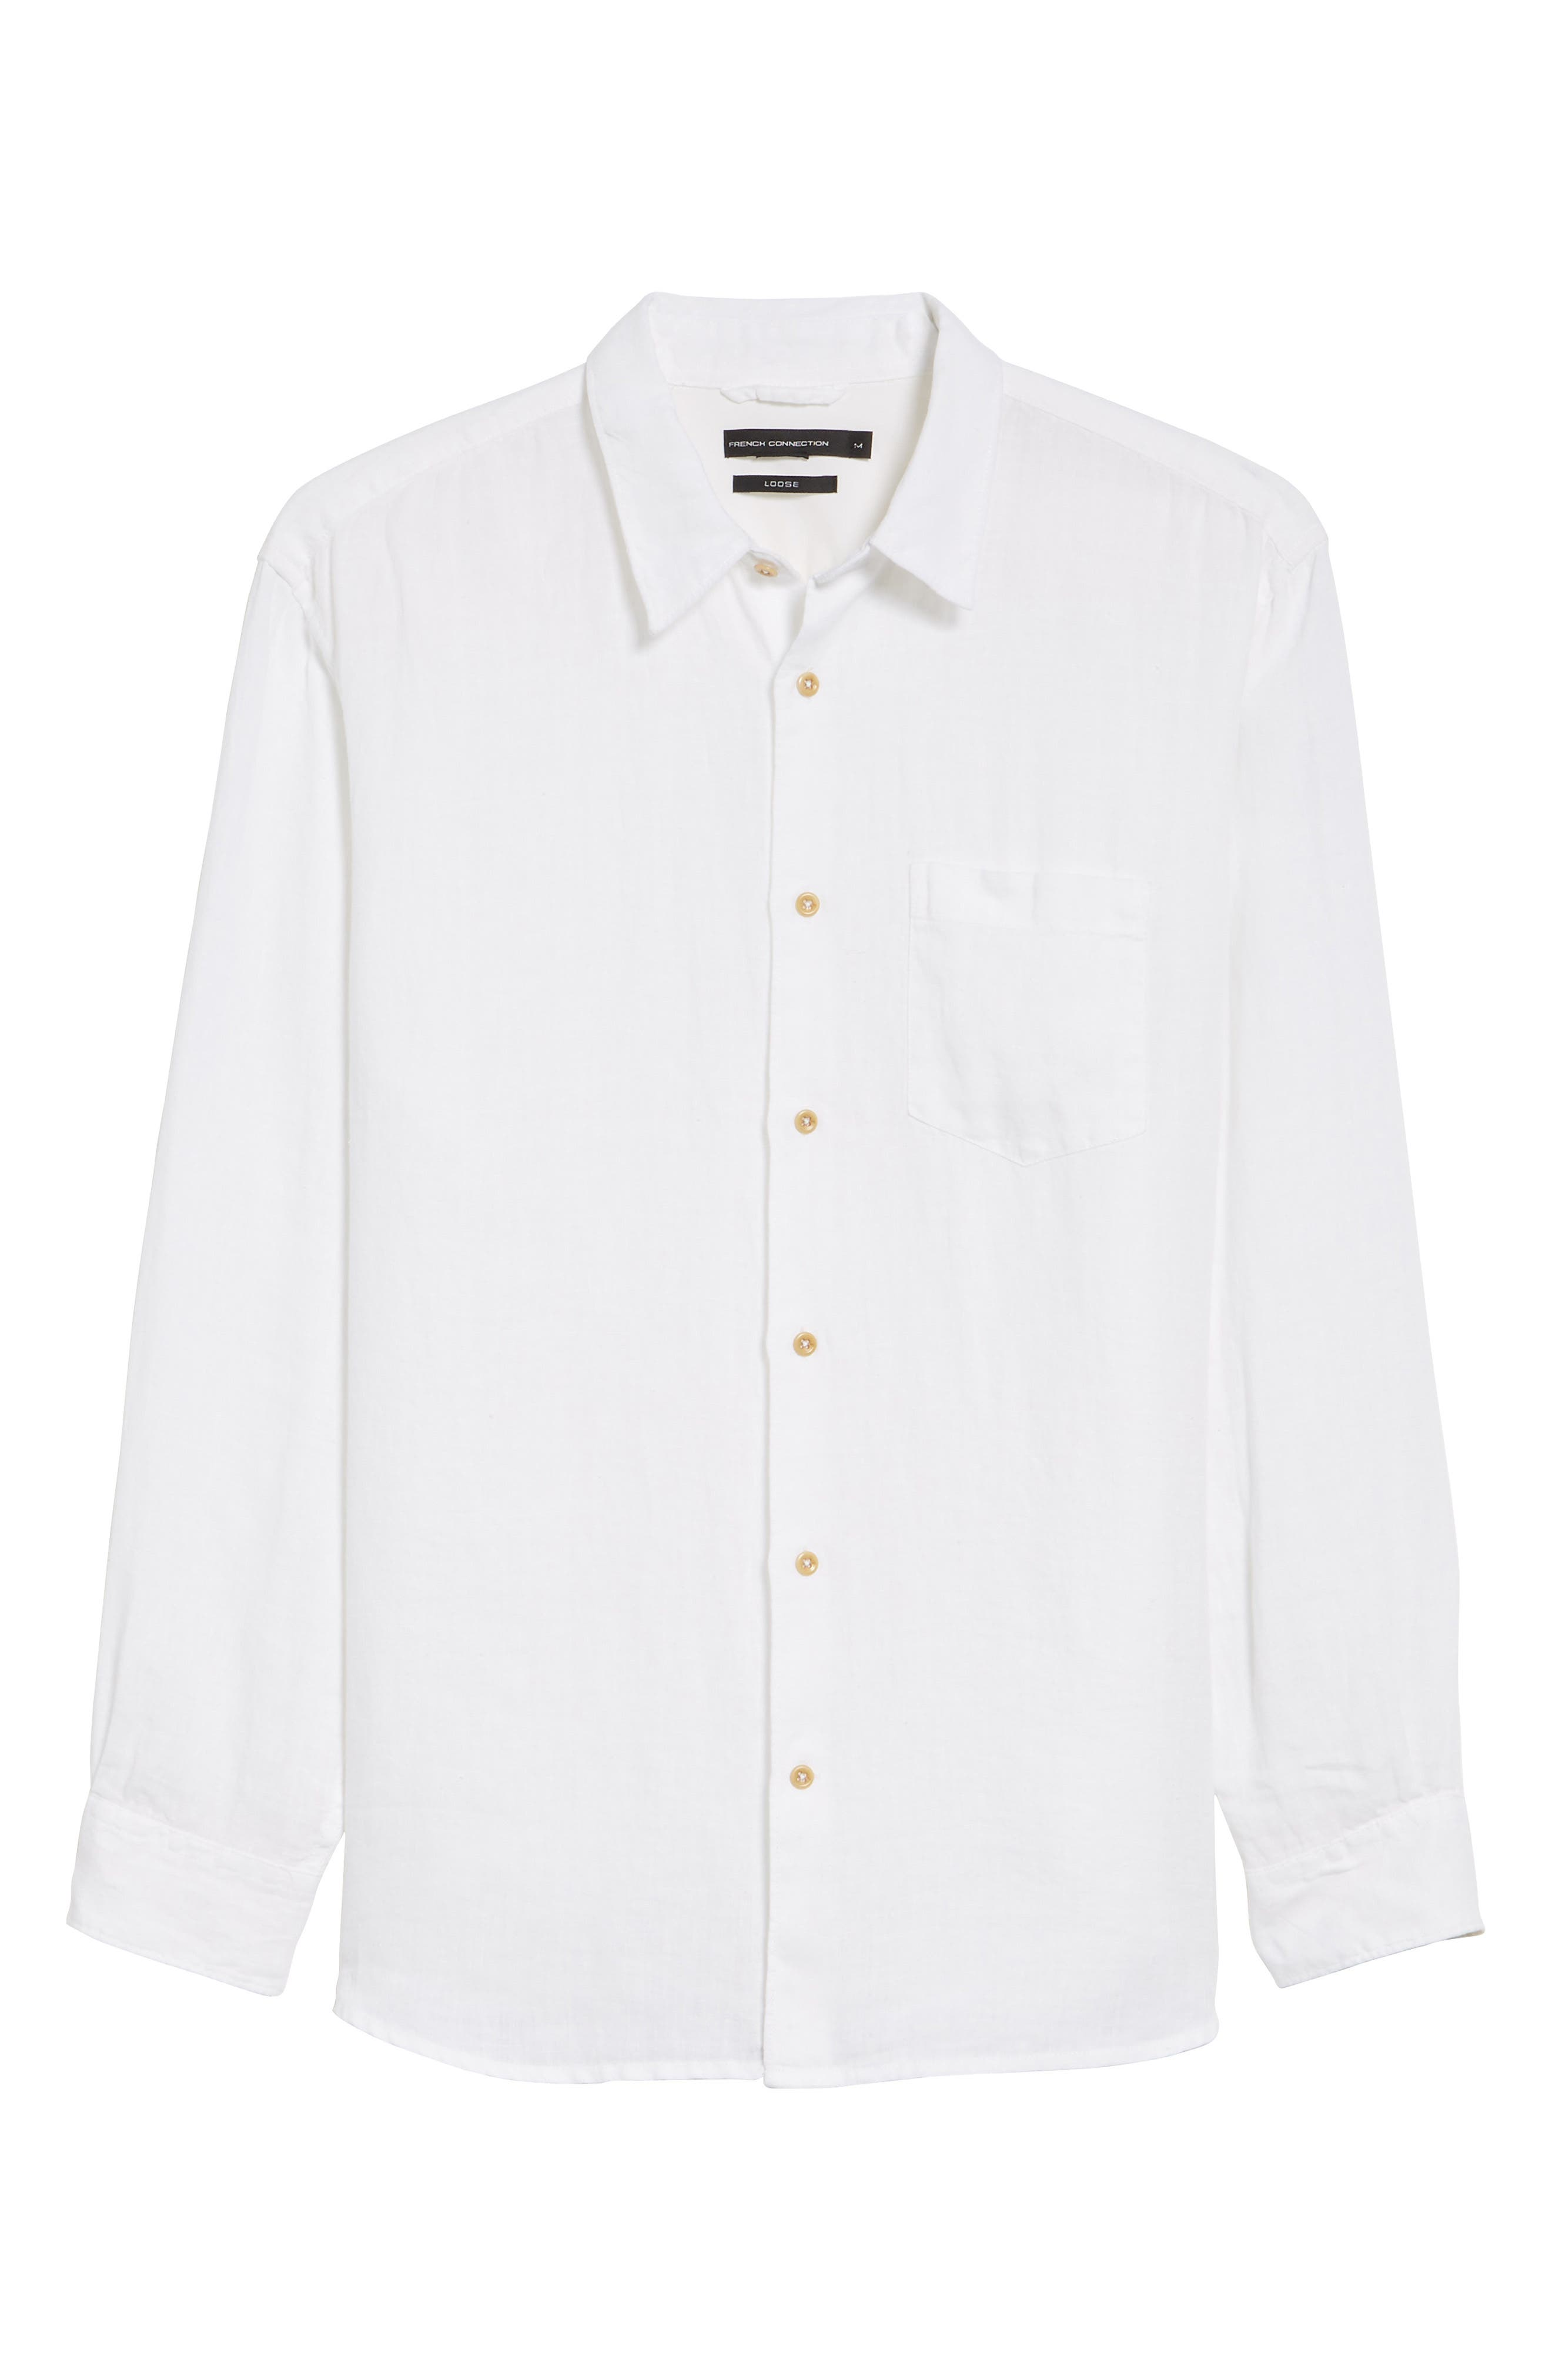 Relaxed Fit Solid Linen Sport Shirt,                             Alternate thumbnail 6, color,                             100